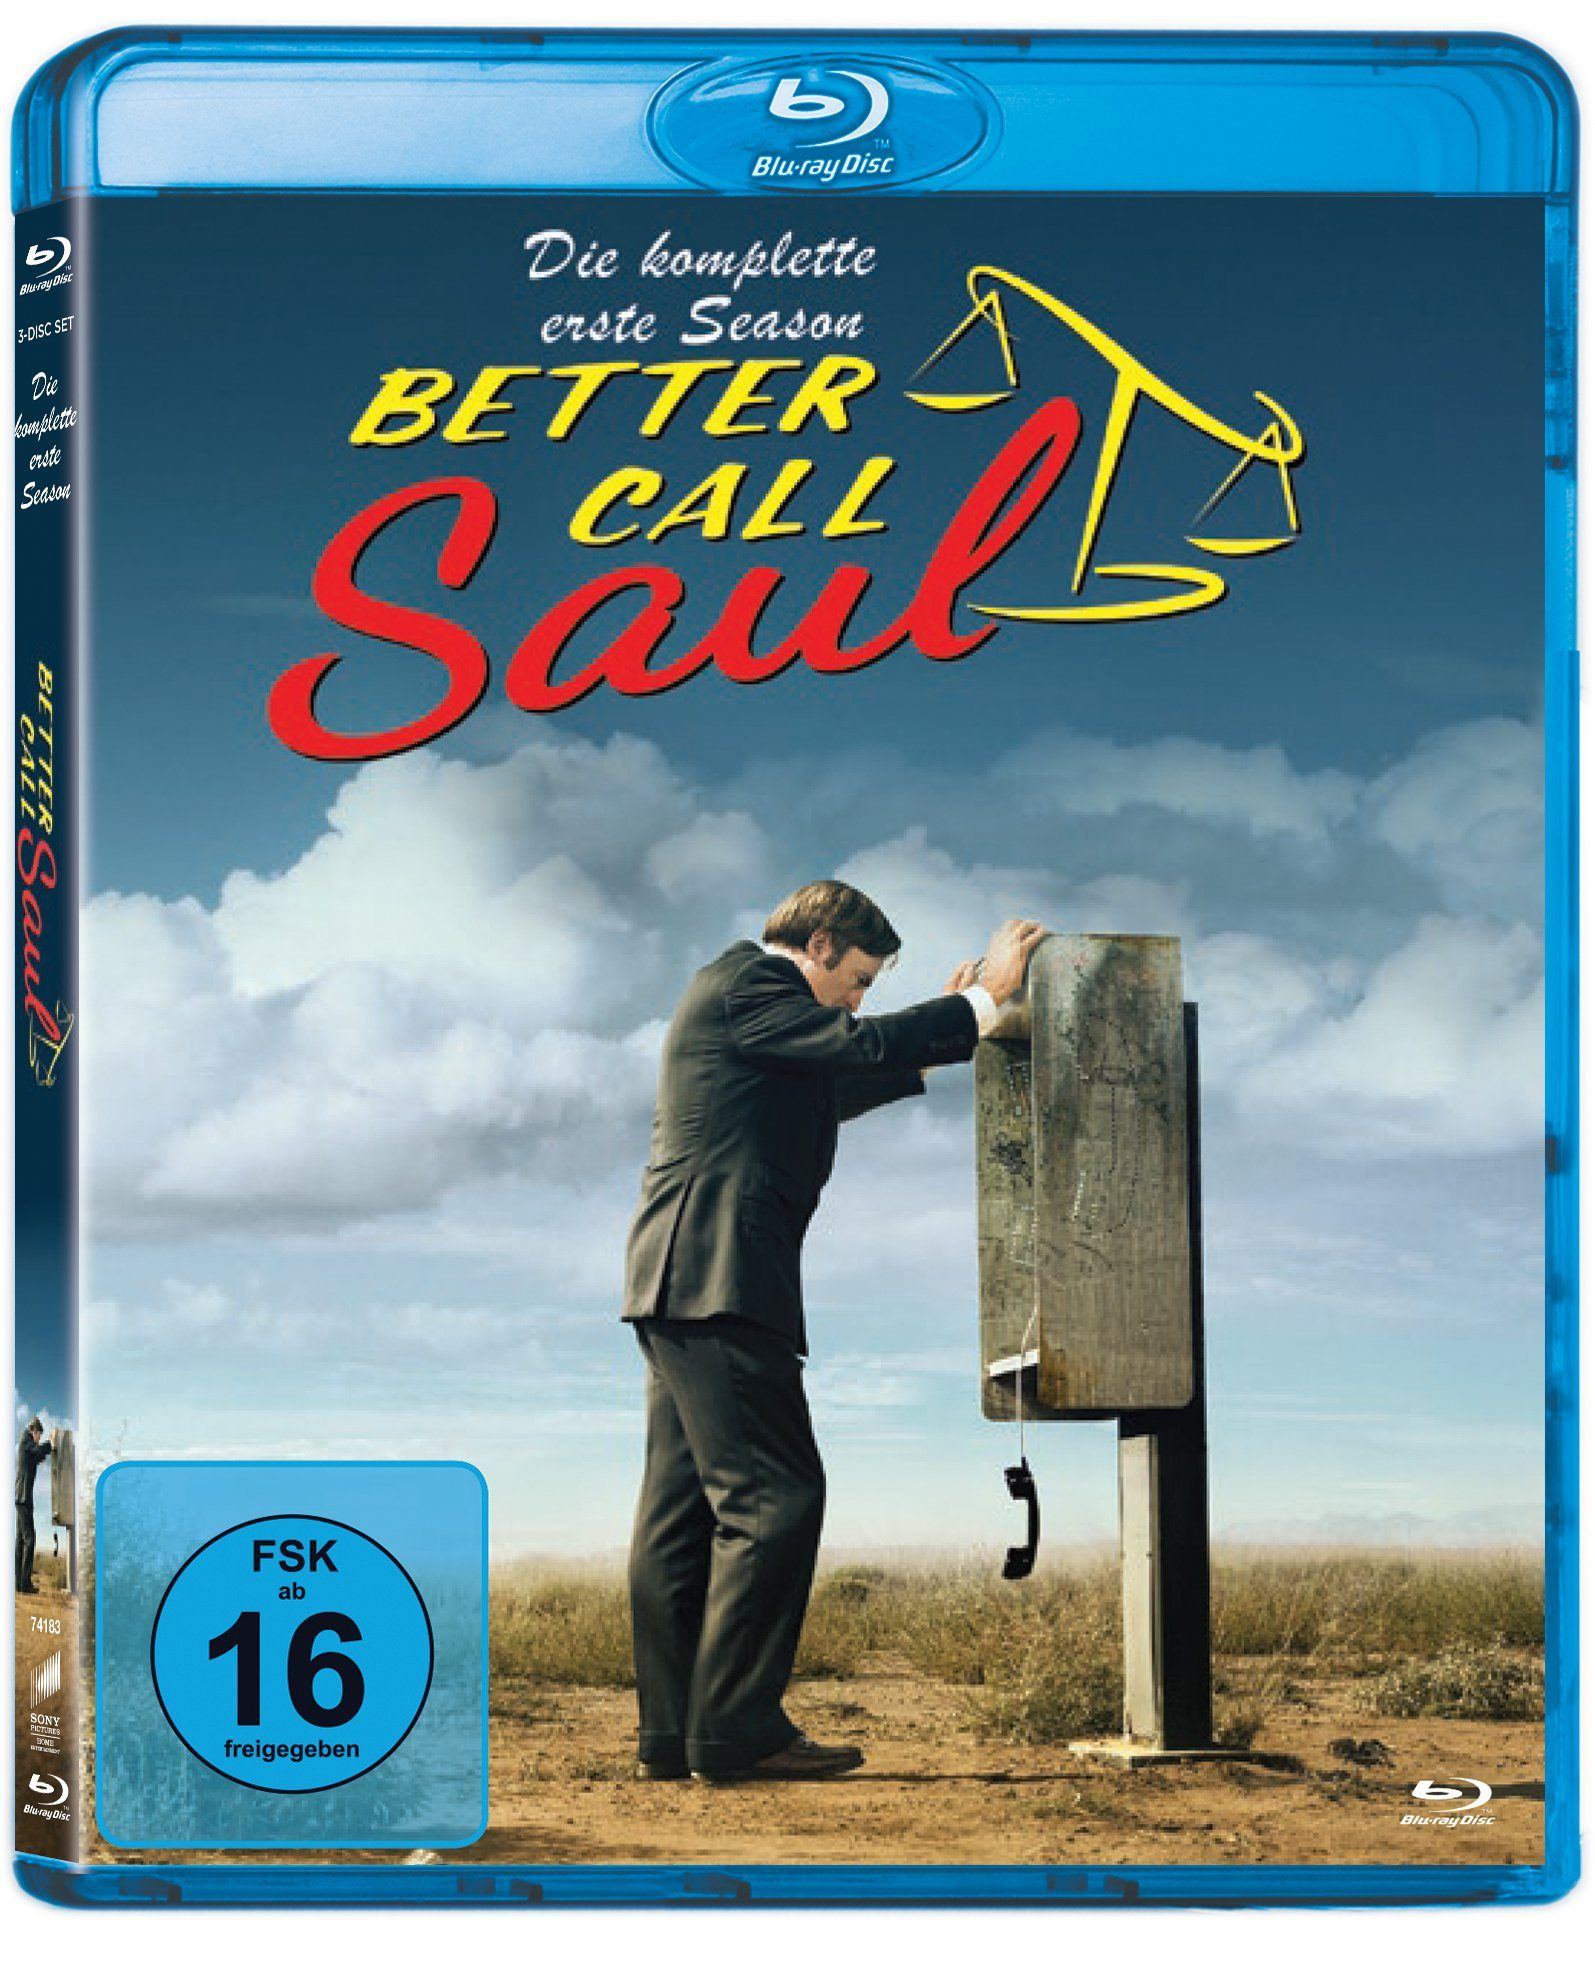 Sony Pictures Blu-ray »Better Call Saul Staffel 1«